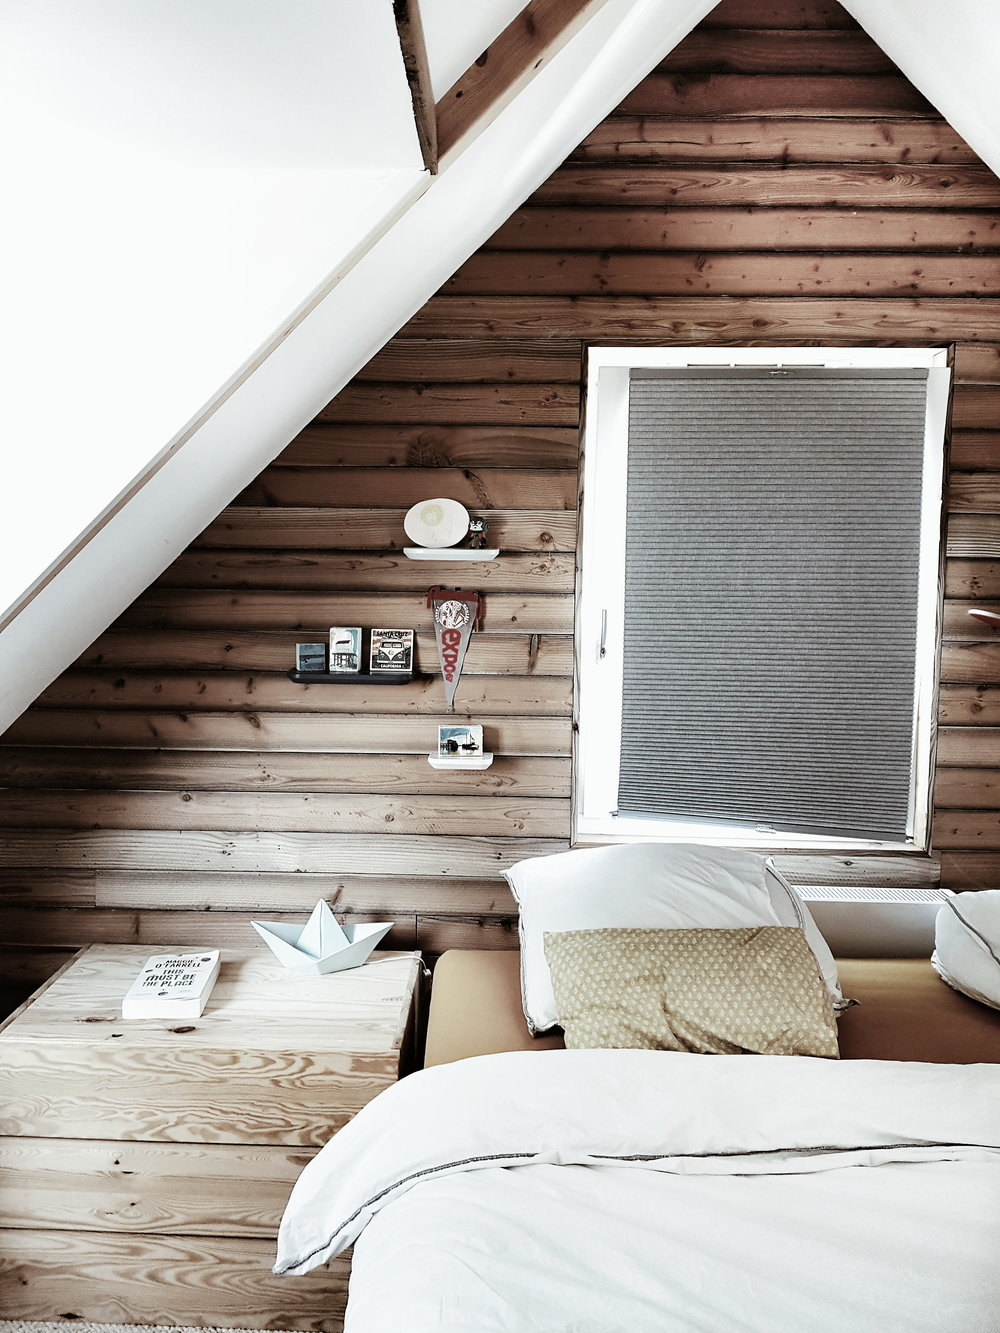 I loved the wood cladding wall which added a rustic edge to the Scandi decor